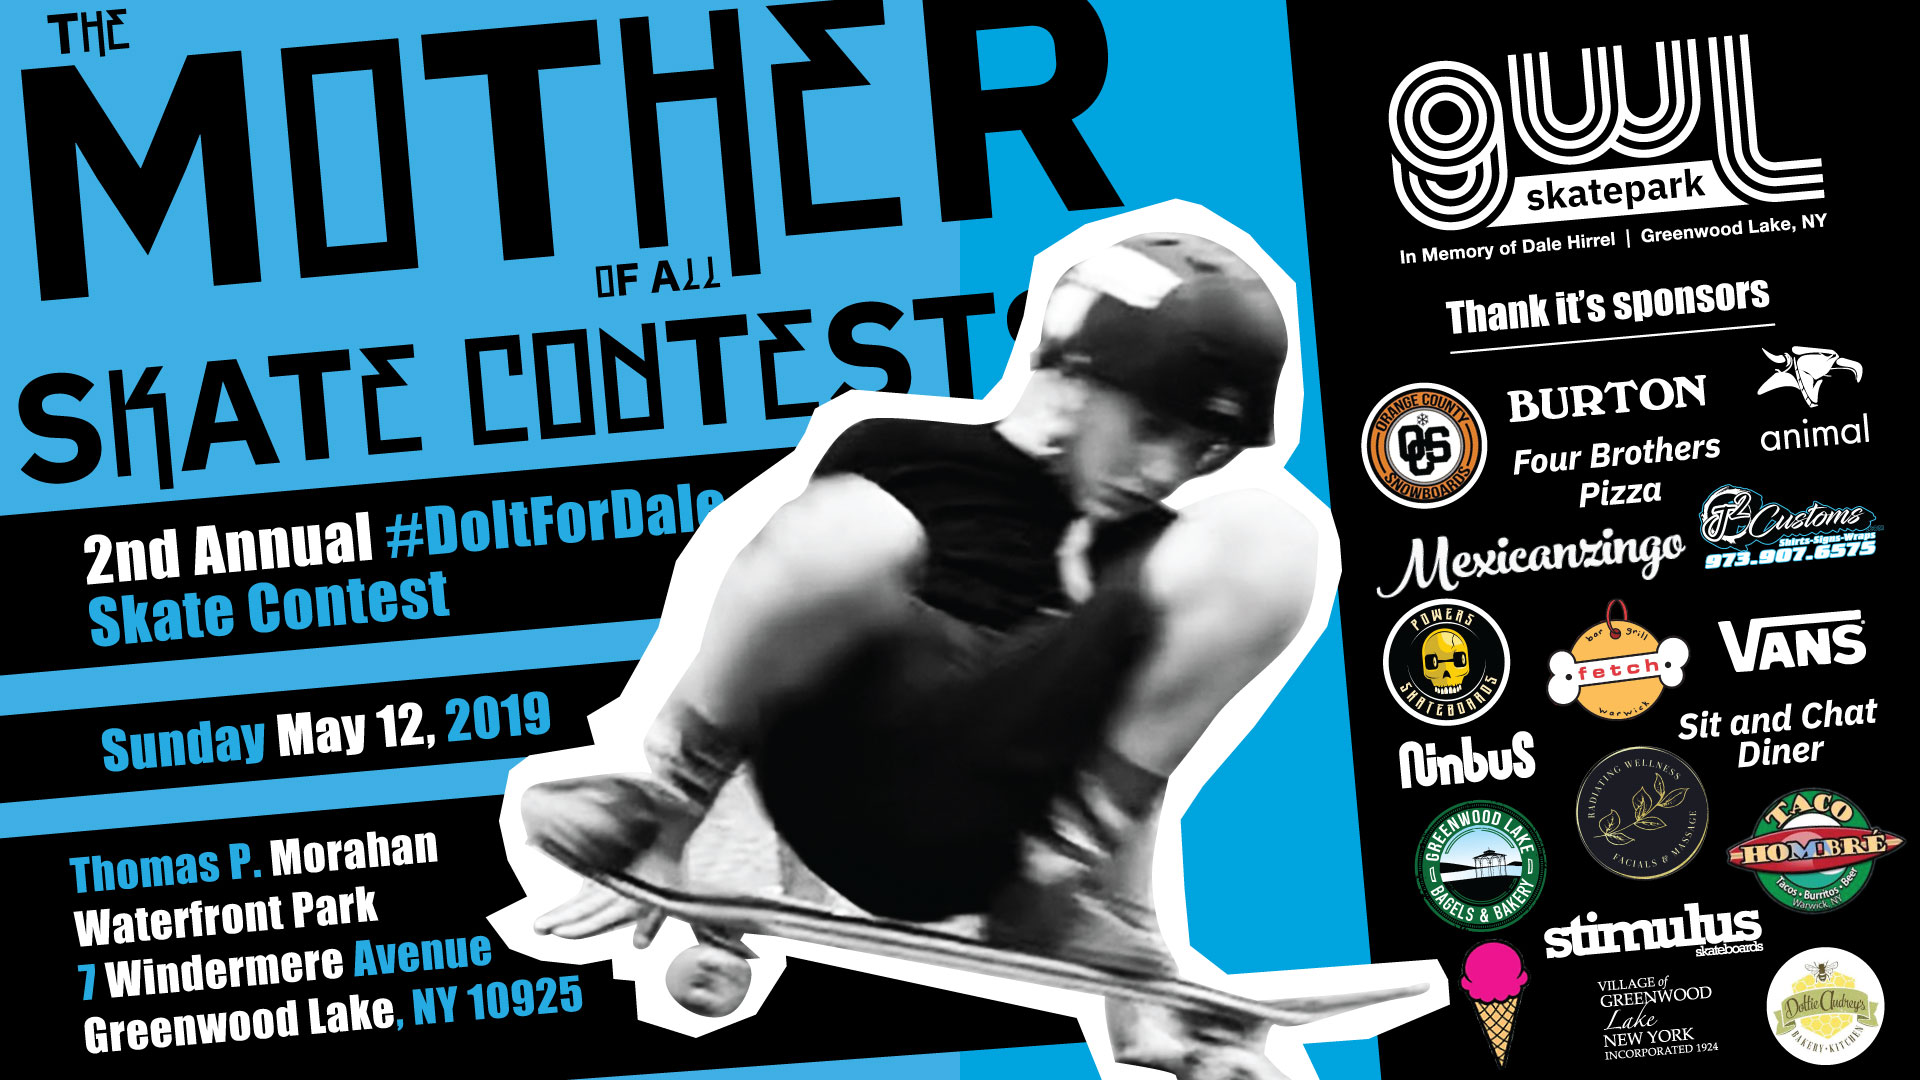 GWLSkatePark Skate Contest, Do It For Dale Skate Contest, Thomas P. Morahan Waterfront Park, Greenwood Lake NY